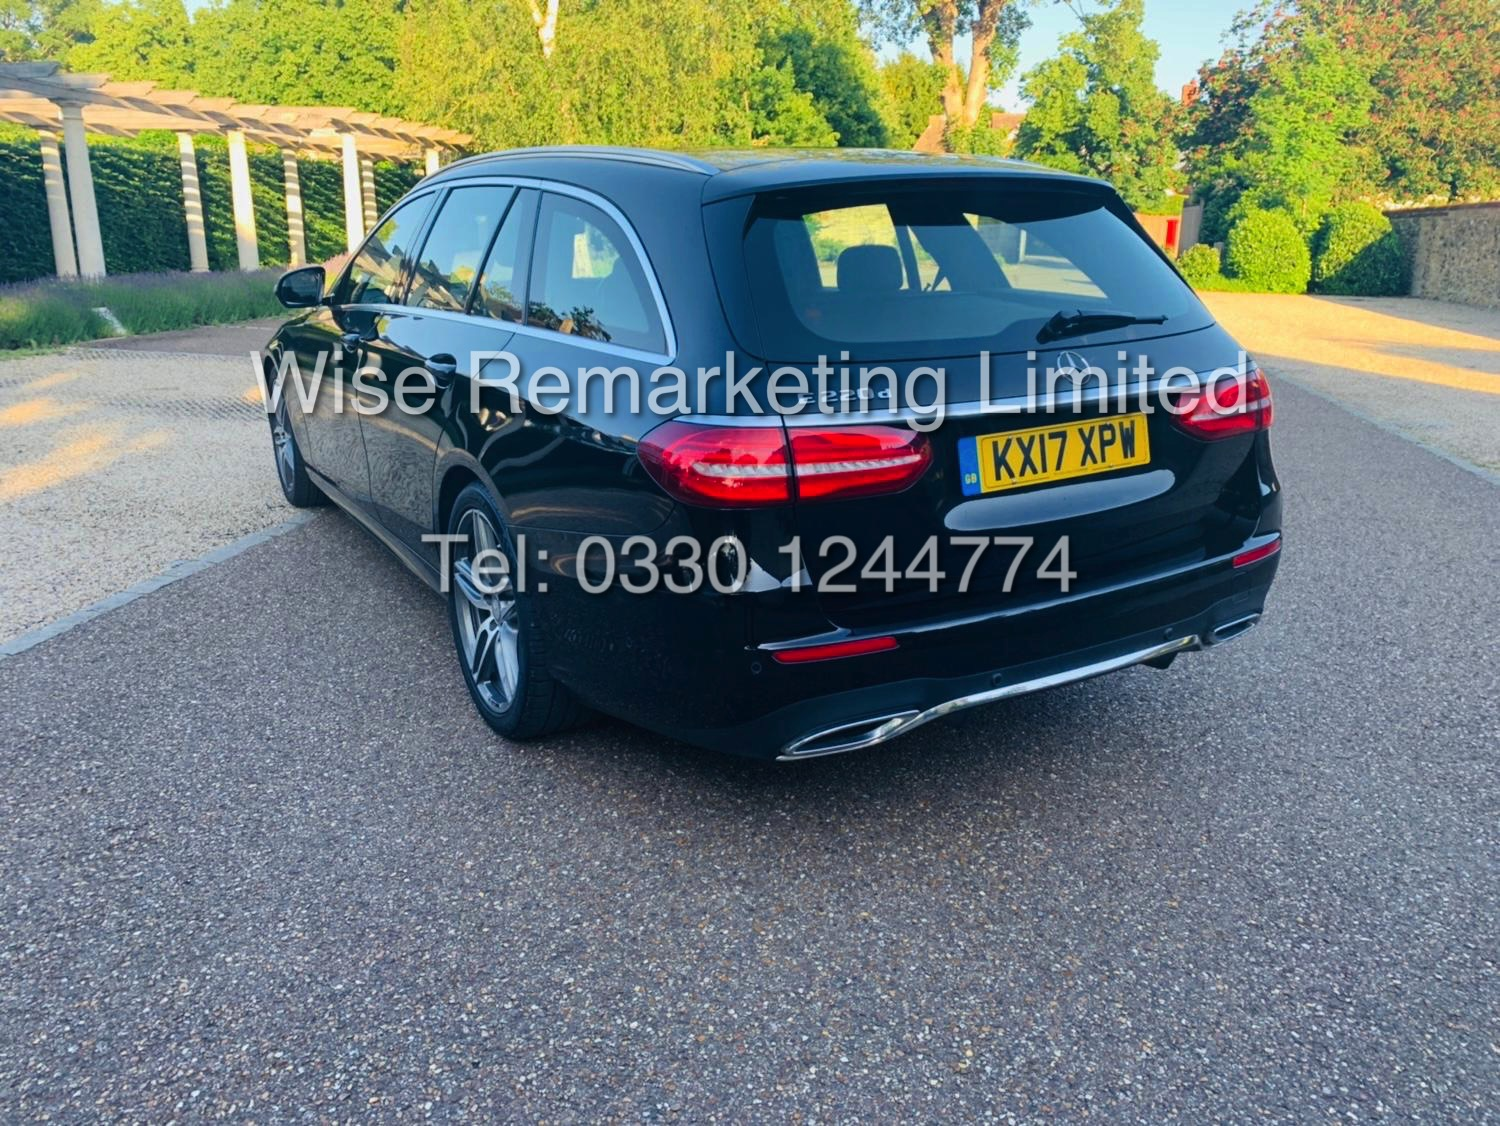 MERCEDES E CLASS ESTATE E220D AMG LINE 2017 / 9G -TRONIC / *LOW MILES* / 1 OWNER - Image 4 of 42